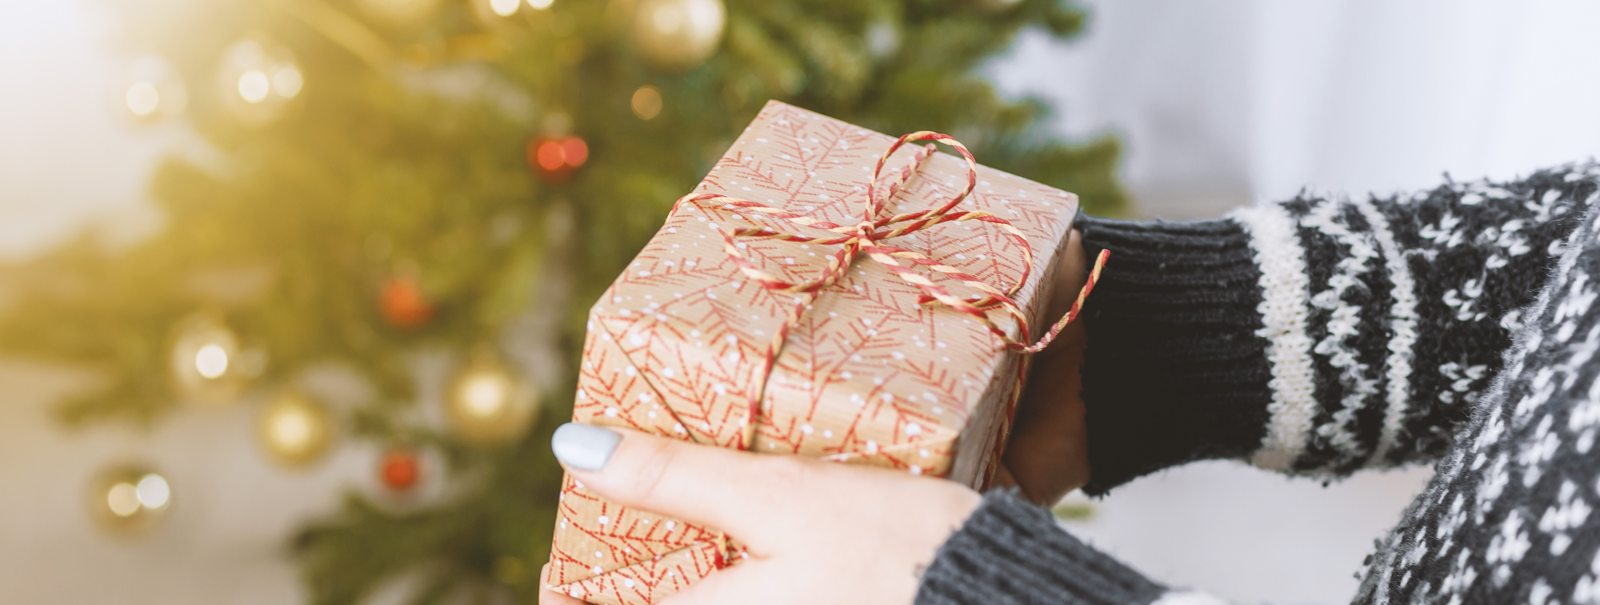 Make the holidays extra special for your coworking members - Gift exchange